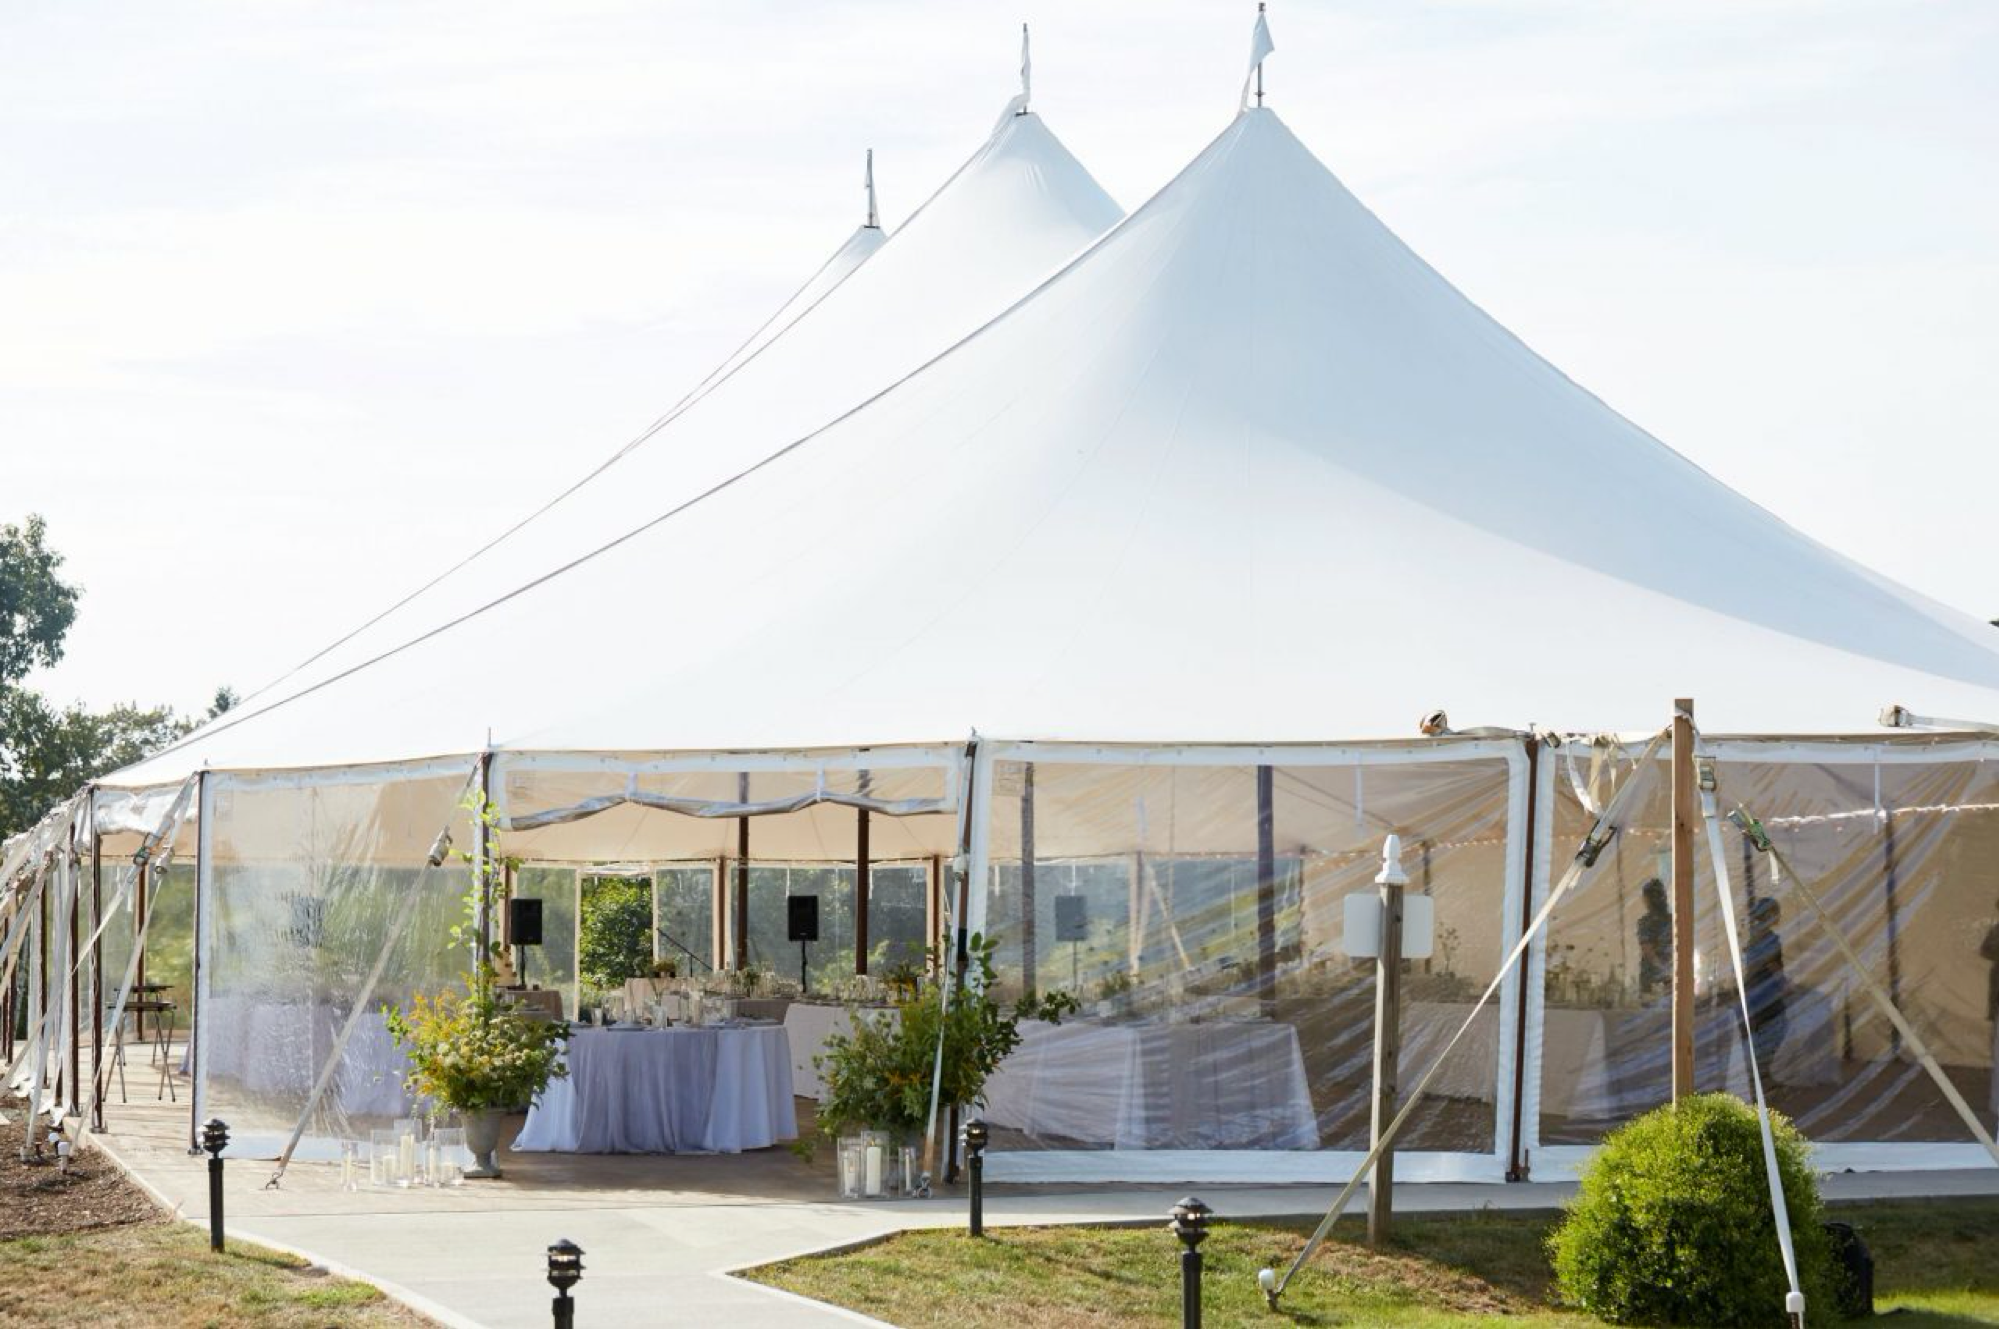 sailcloth tent interior with tables